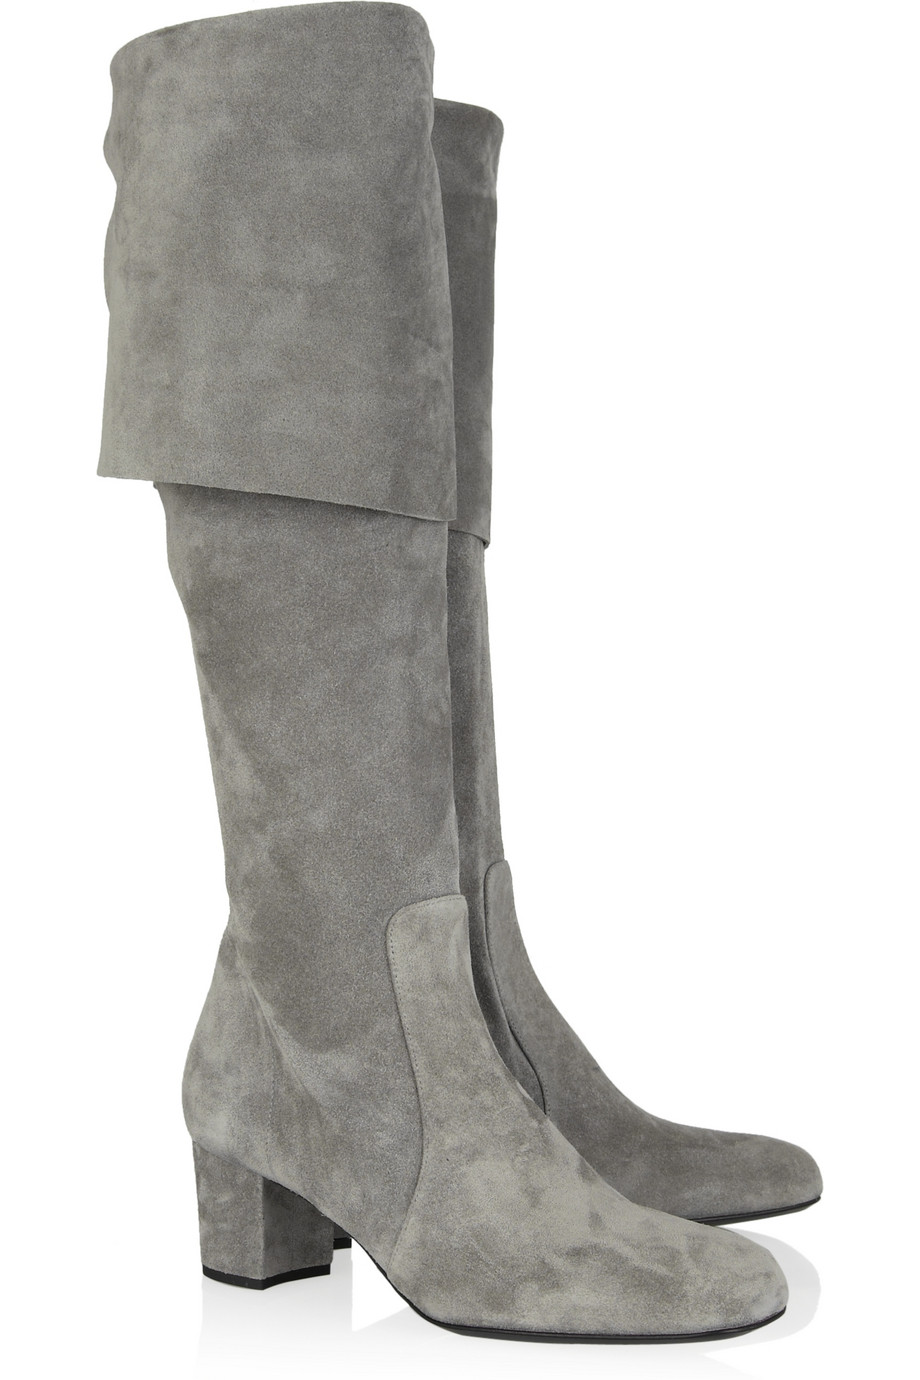 michael kors suede the knee boots in gray lyst